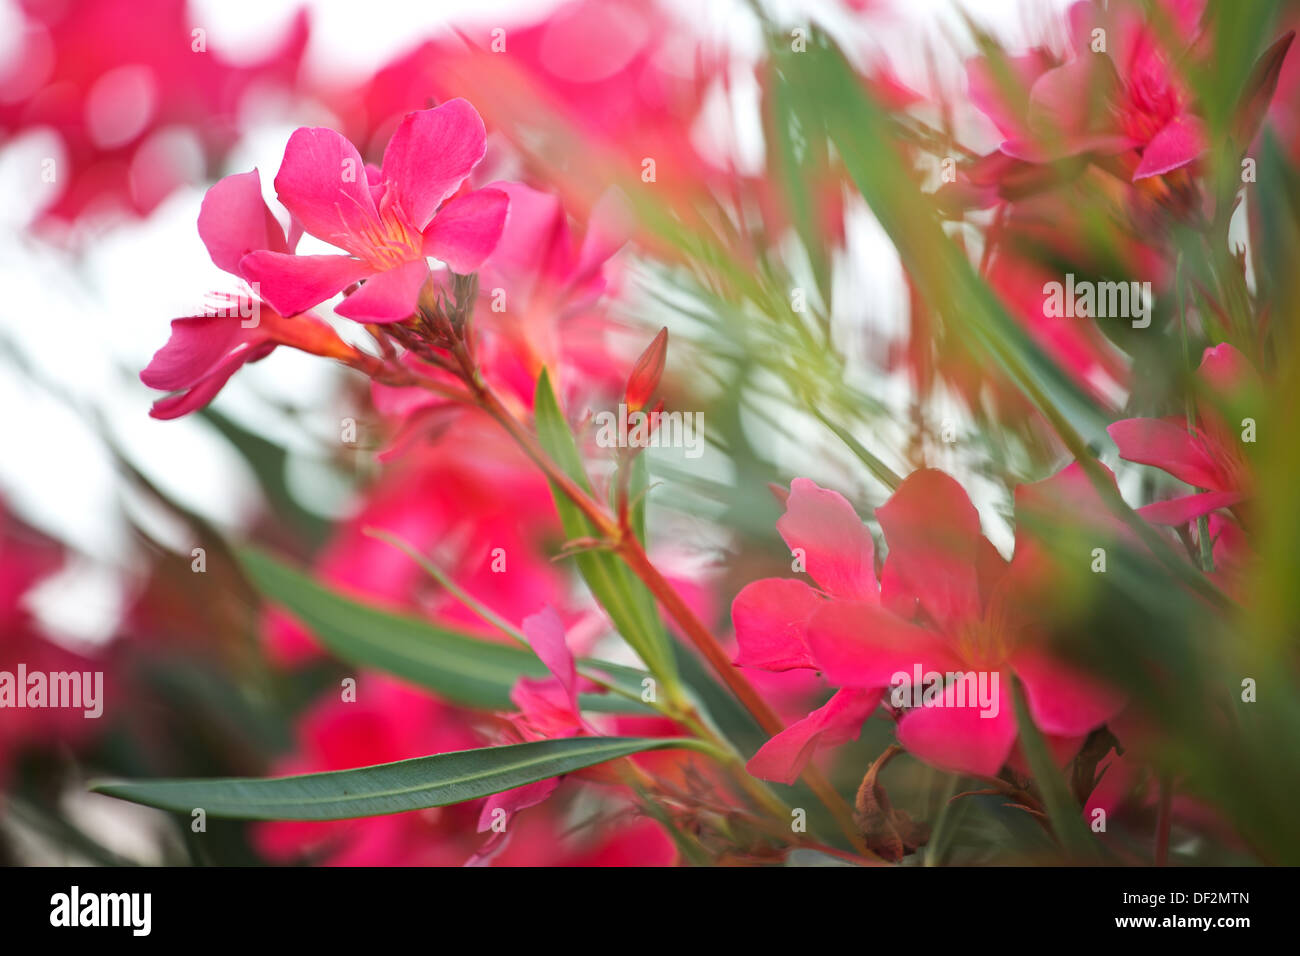 Photo of the pinky rural flowers - Stock Image